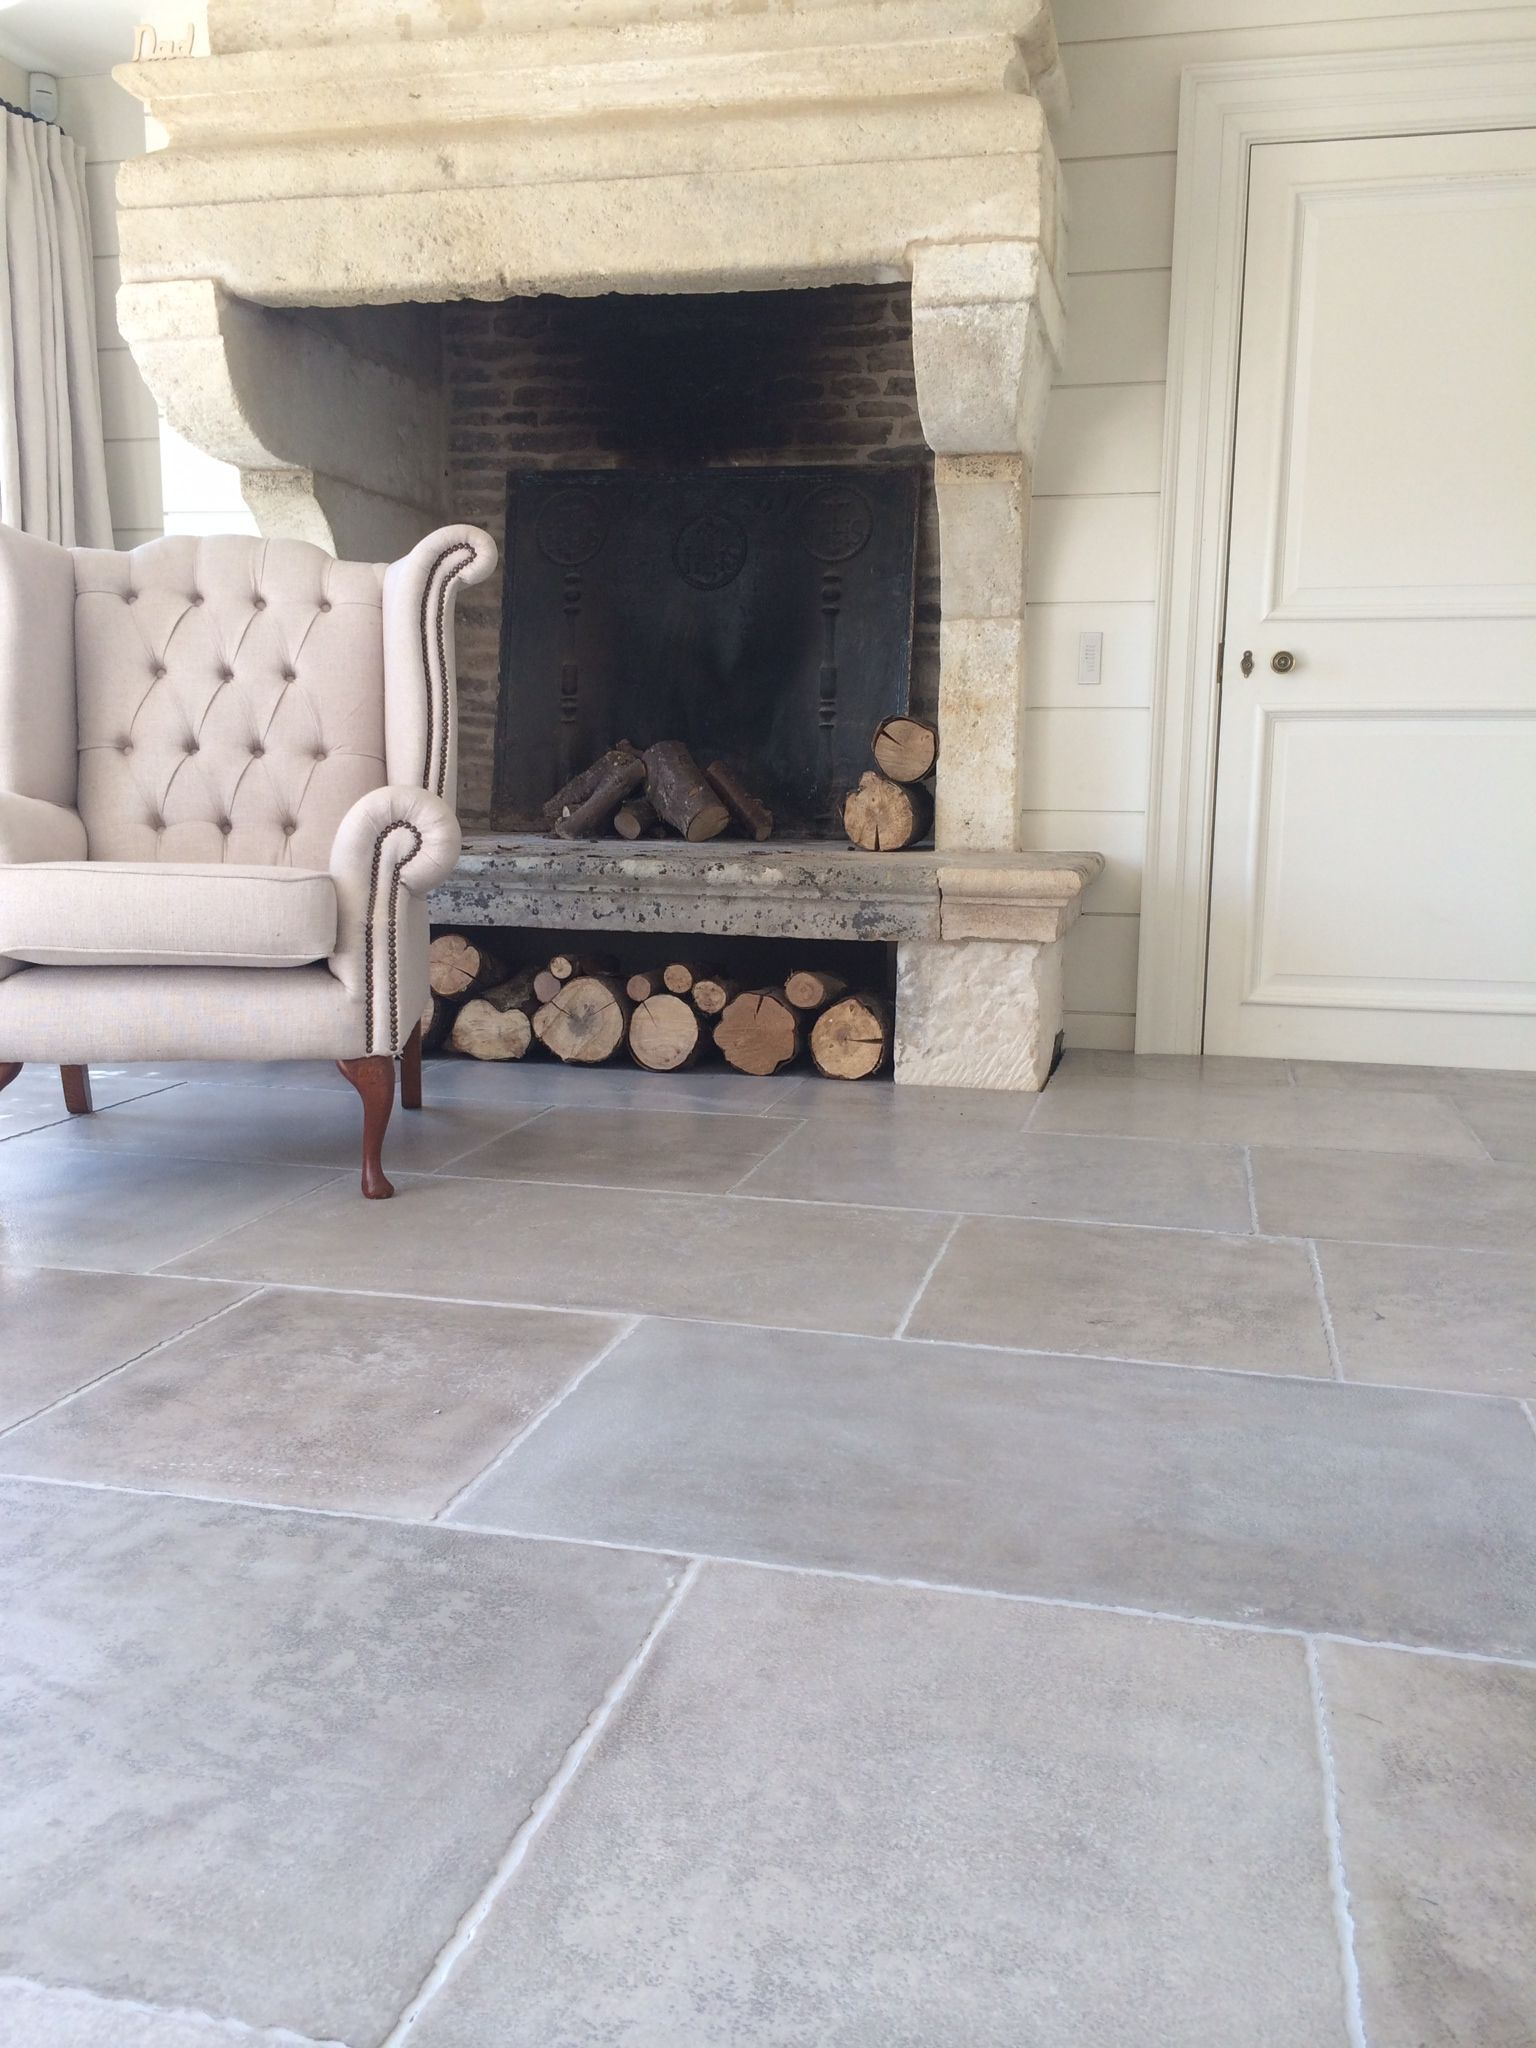 Geneva Provence hand finished limestone from Isreal with a distinctive hammered finish.